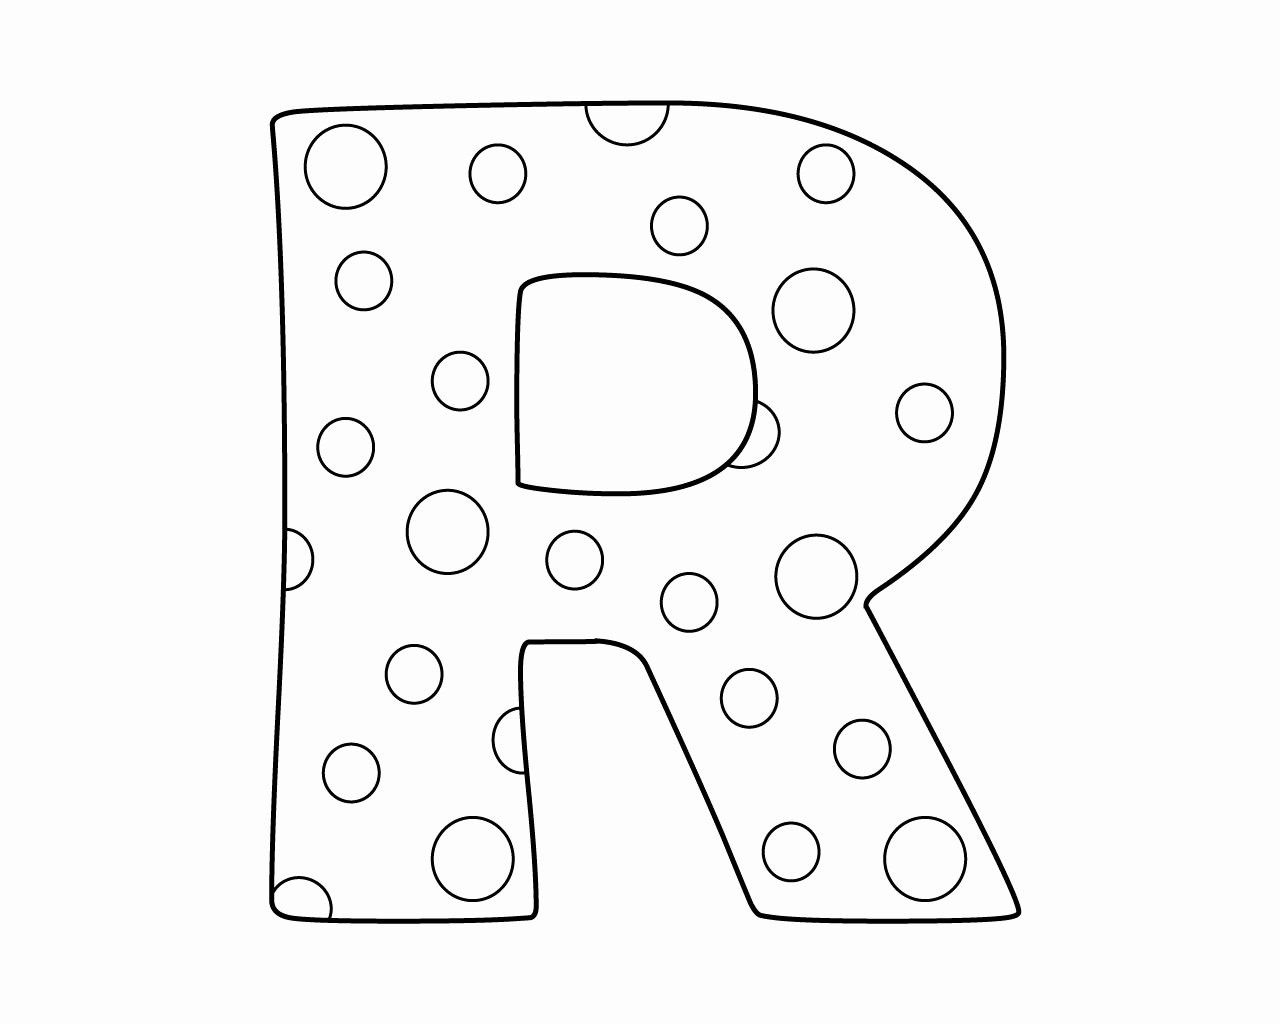 5 Alphabet Worksheets Difficult F2dc12 R Coloring Page Coloring Letters Coloring Pages Dream Catcher Coloring Pages